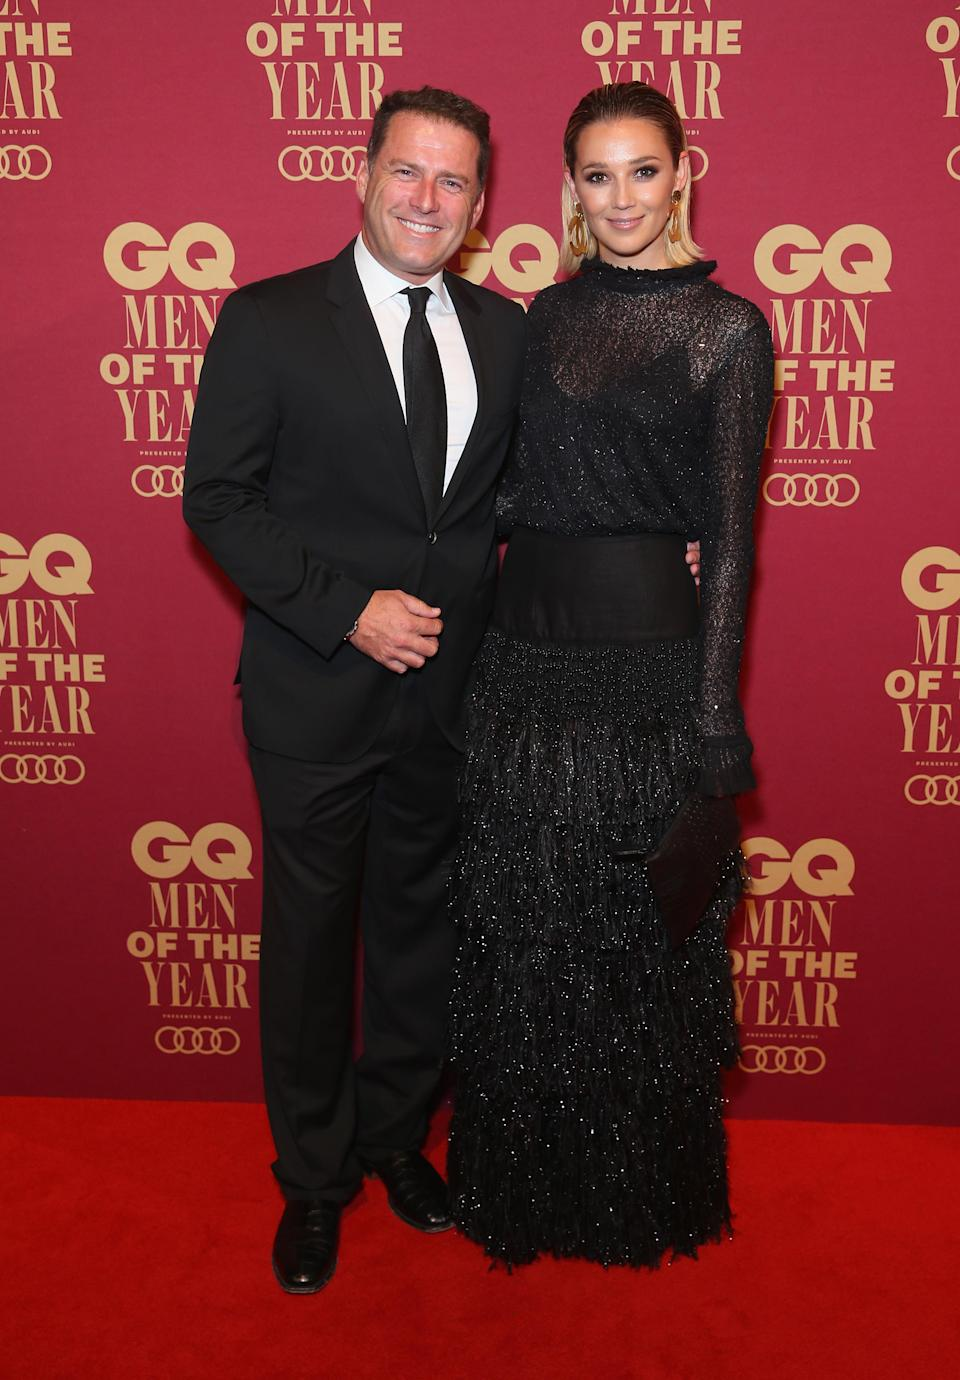 Karl married Jasmine Yarbrough last week in a lavish wedding in Mexico. Photo: Getty Images